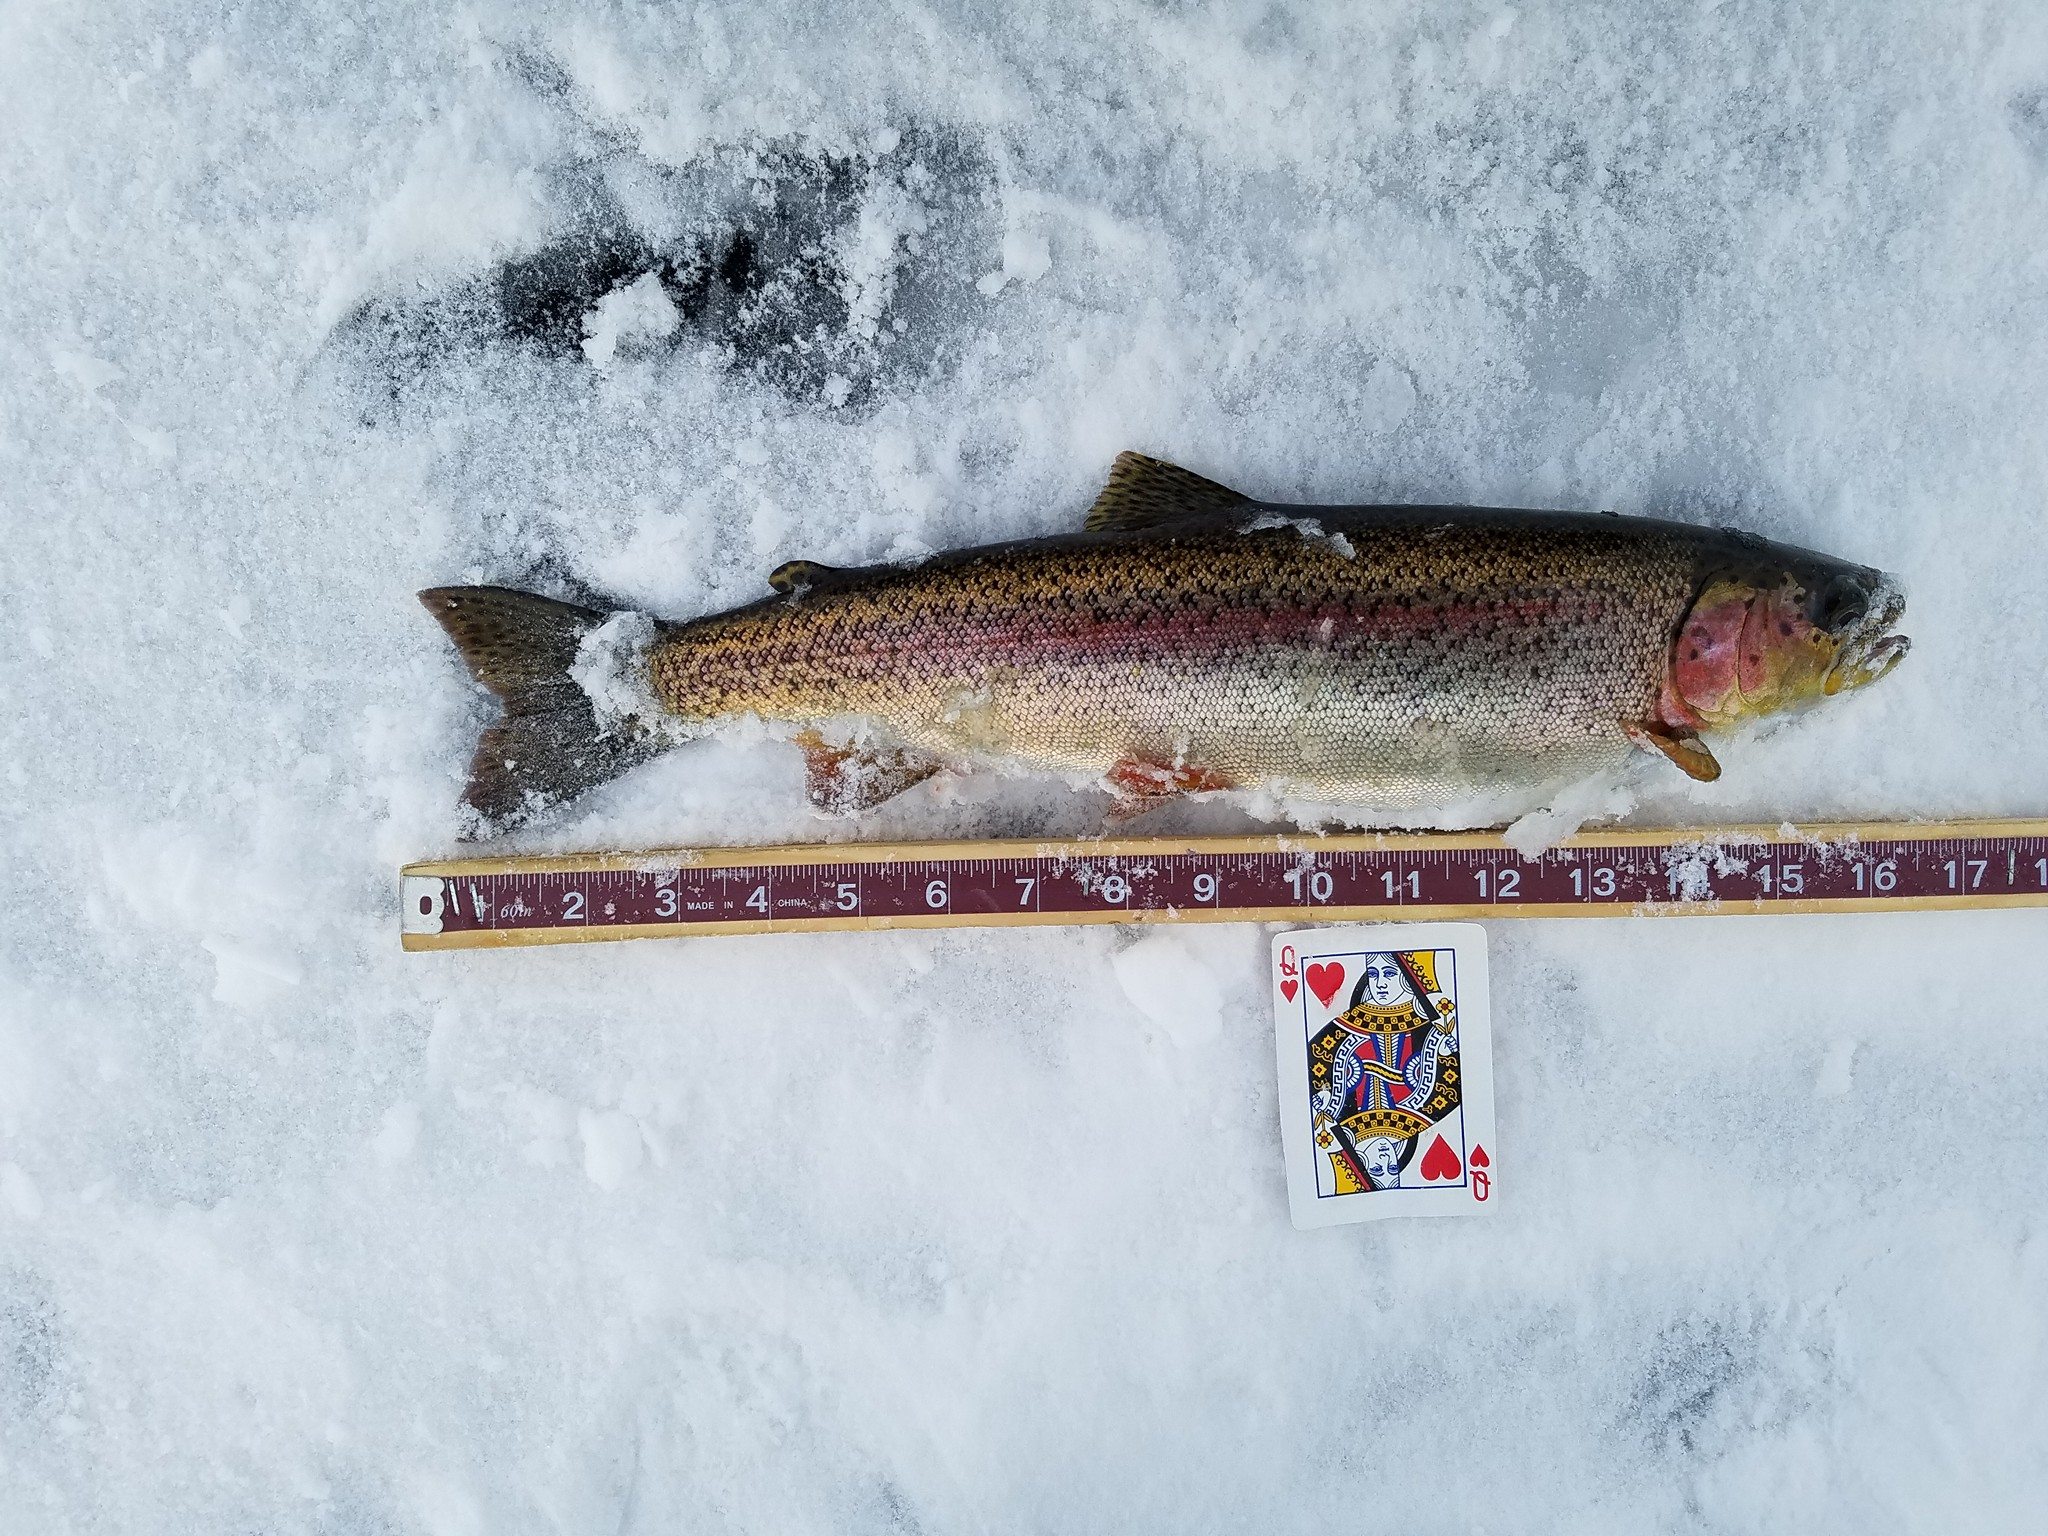 Three Lakes Ice Fishing Tournament